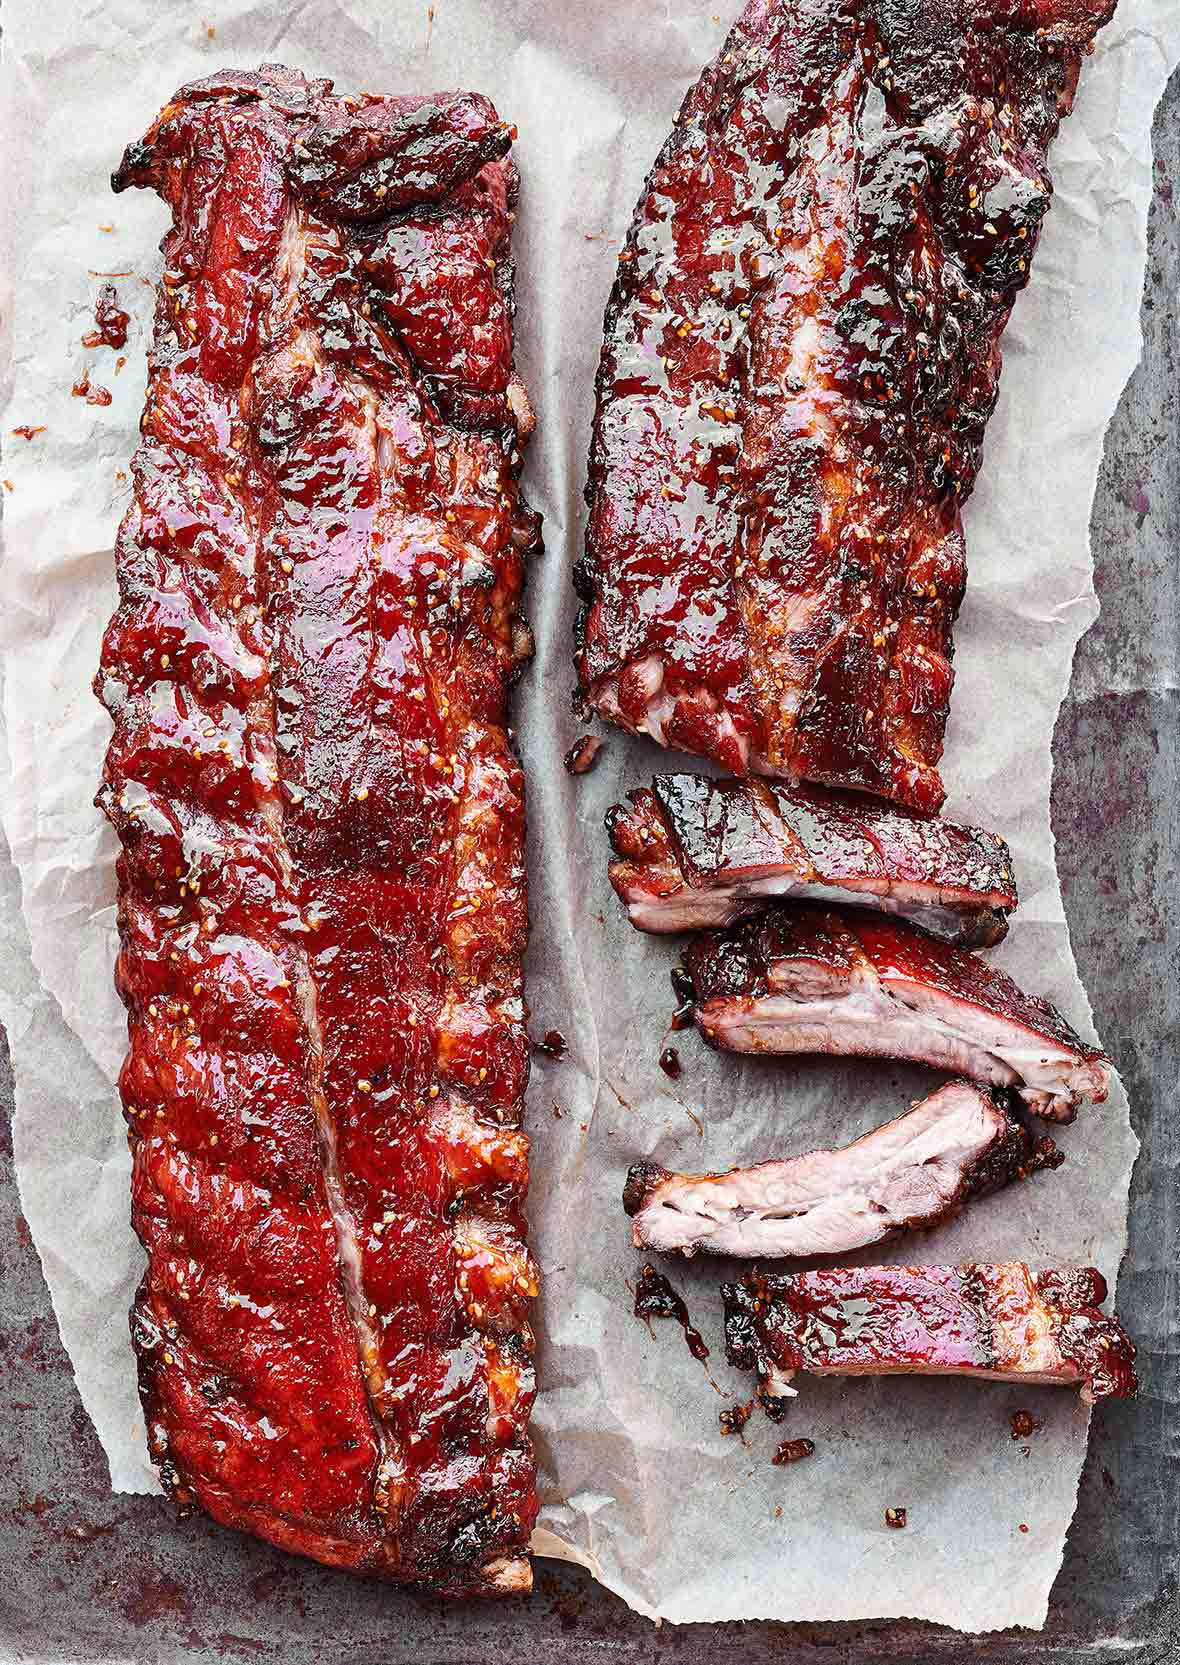 Two slabs of honey teriyaki ribs, one partially cut into ribs on a sheet of parchment.